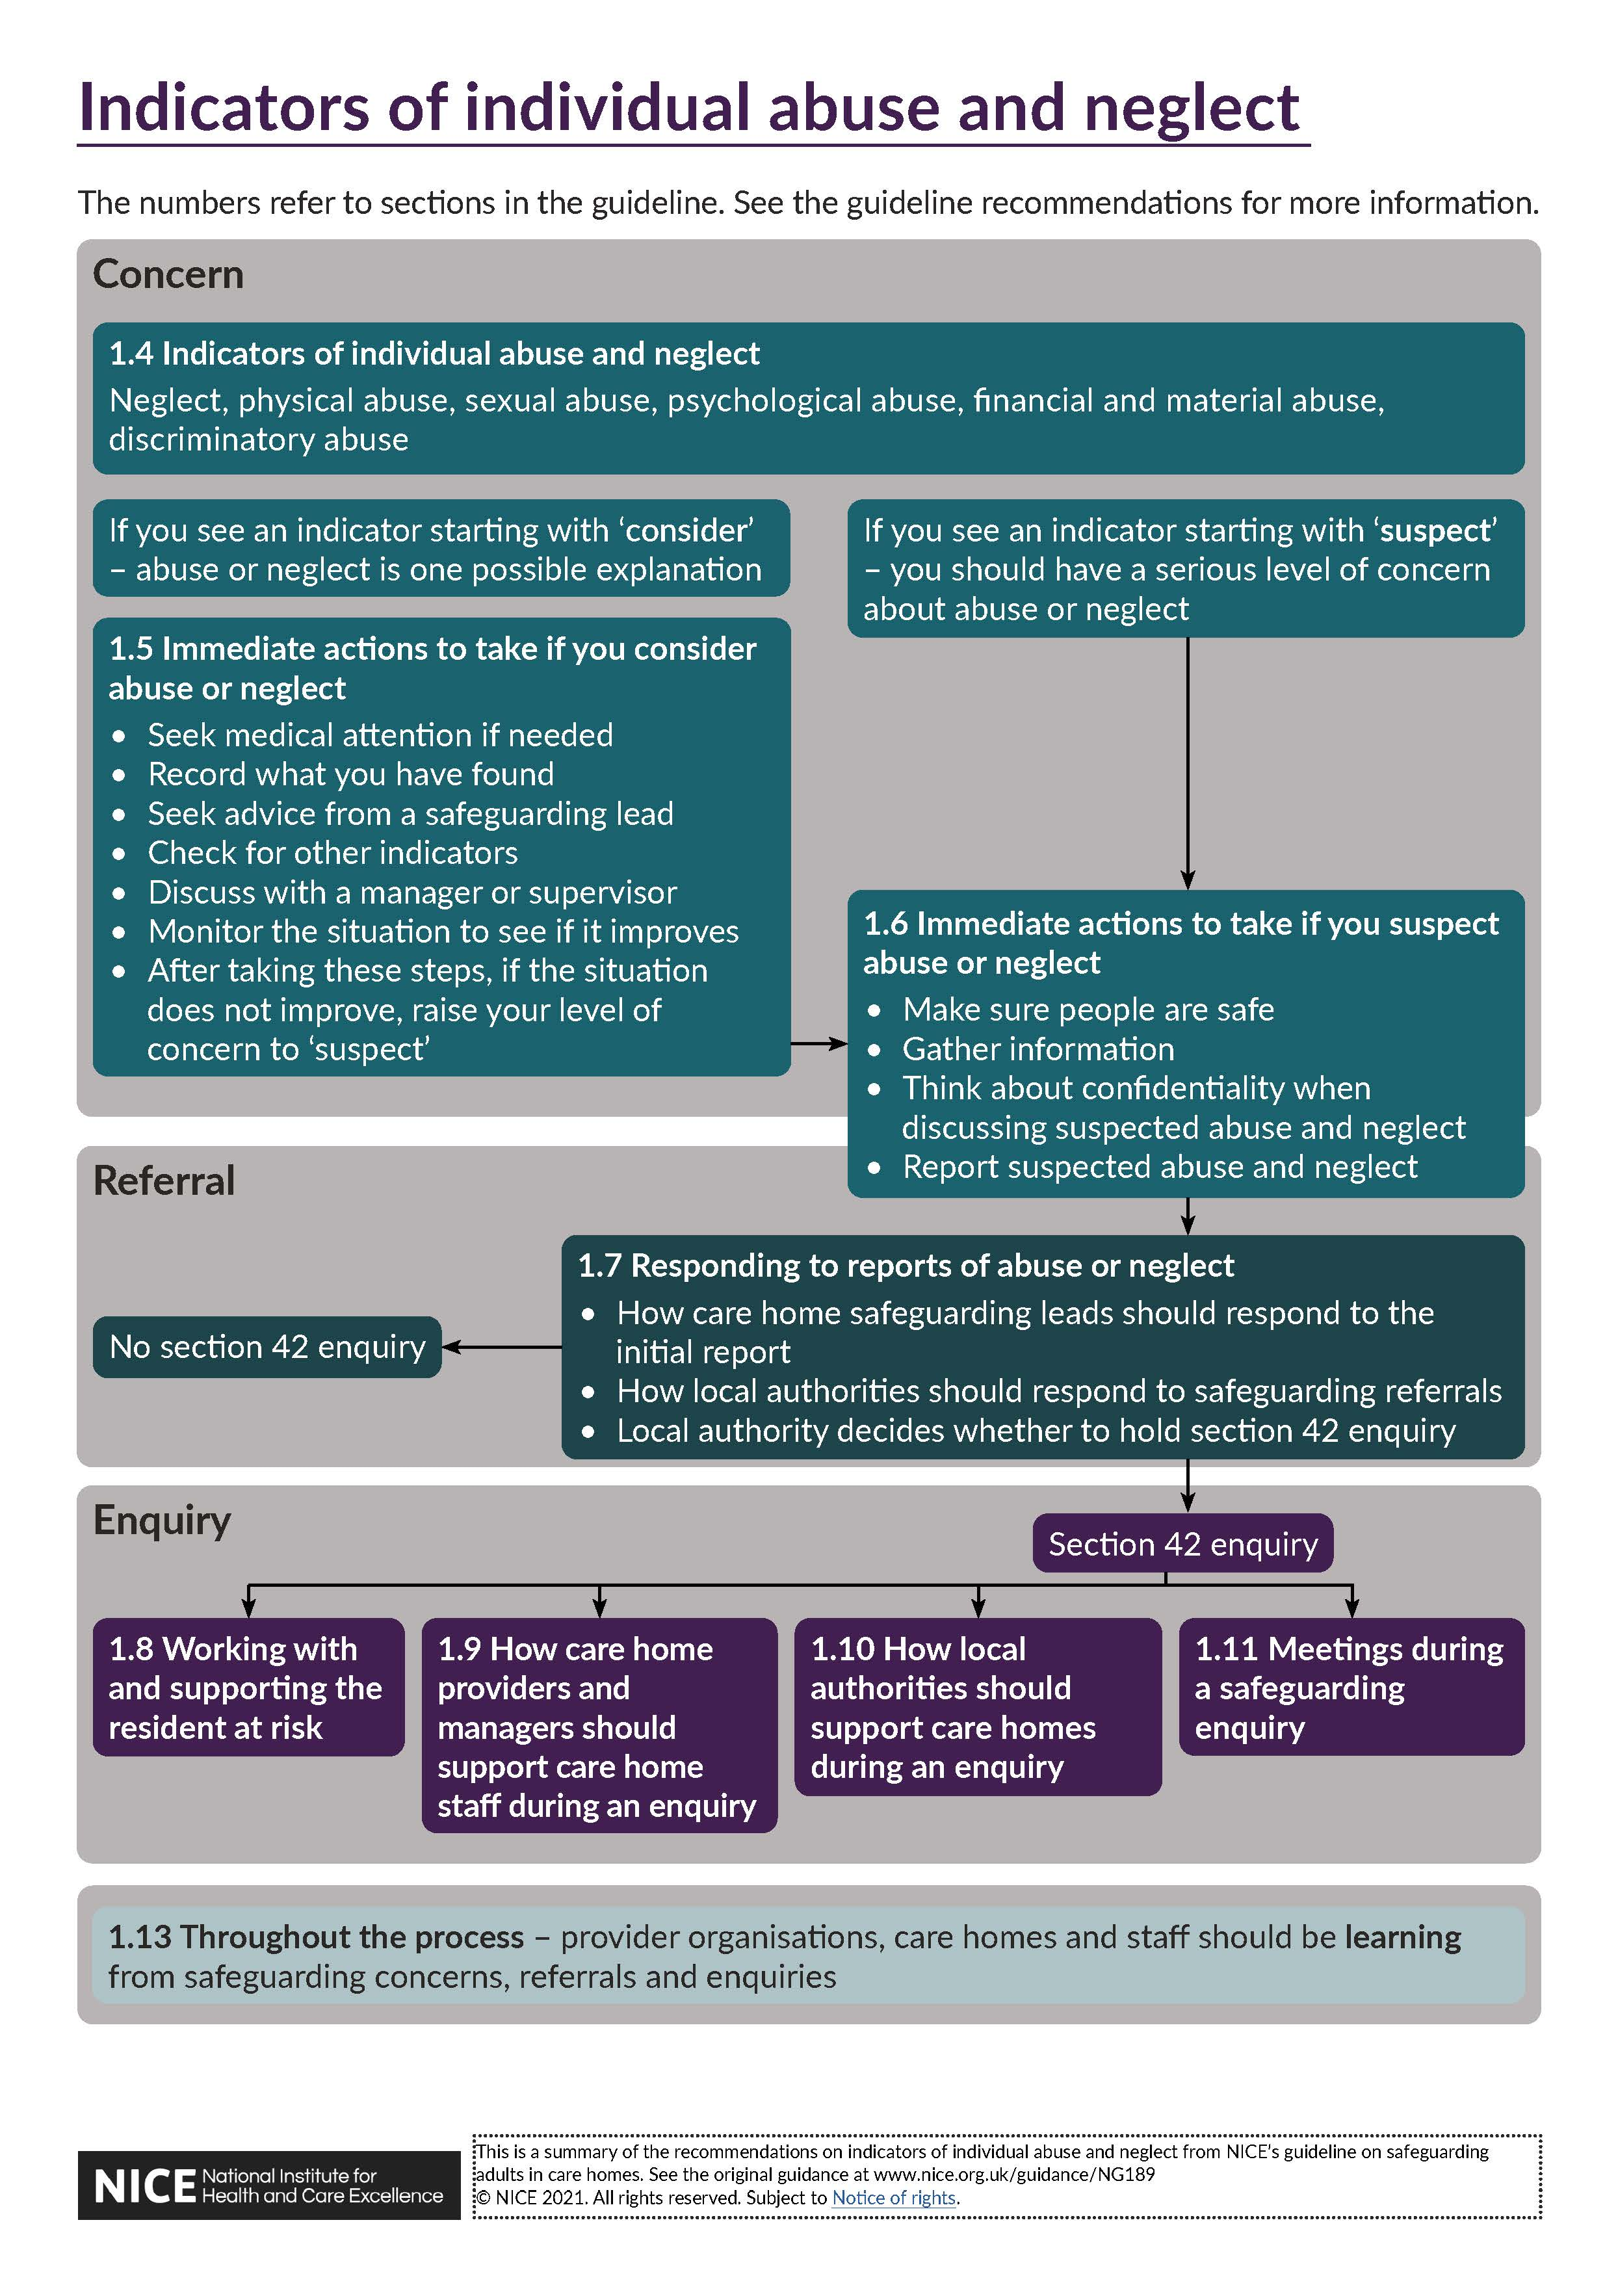 View individual abuse and neglect visual summary